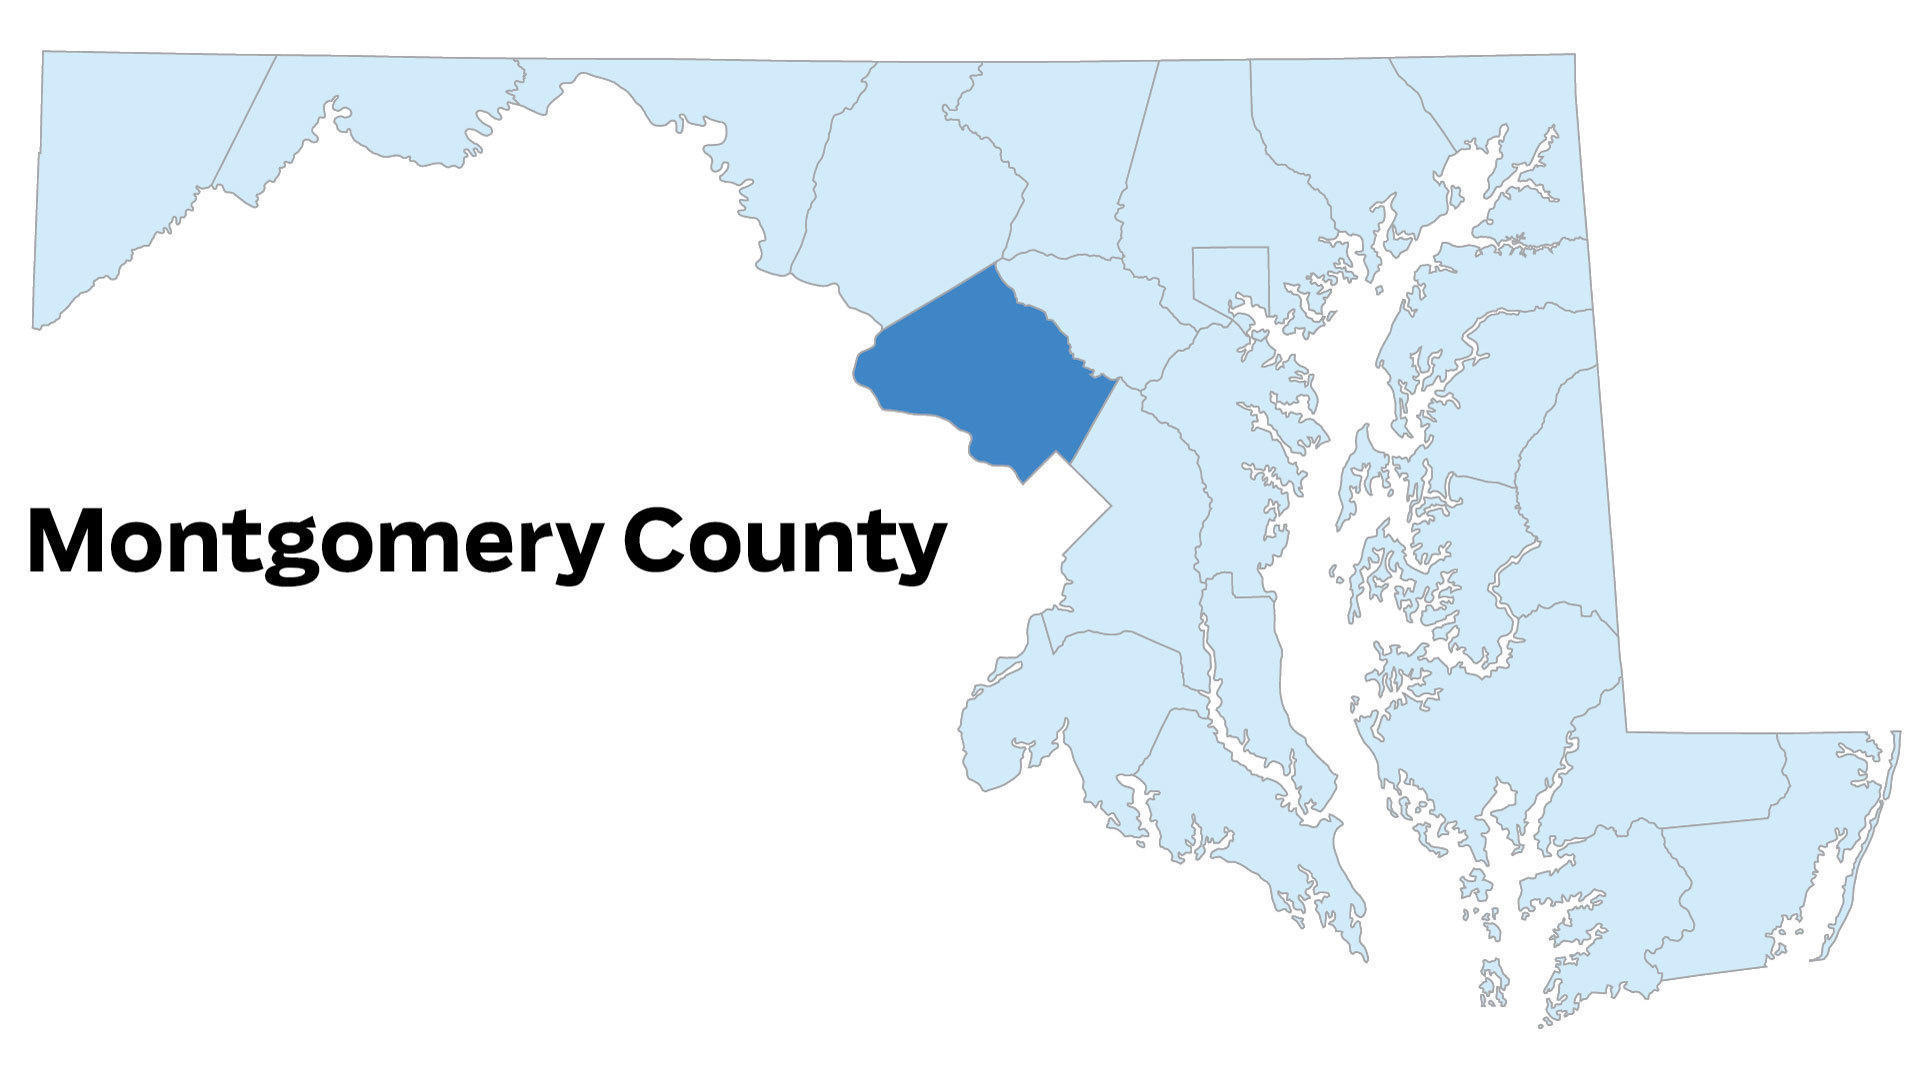 What is Montgomery County? Affluent D.C. suburb is ... Map Montgomery County Md on aa county md map, germantown md map, bethesda md map, rockville md map, fredericksburg md map, howard county md map, bowie md map, silver spring md map, calvert county md map, piscataway park md map, somerset md map, martinsburg md map, charles county md map, st. mary's county md map, pennsylvania md map, cecil md map, point lookout state park md map, maryland county map, russett md map, harford county md map,